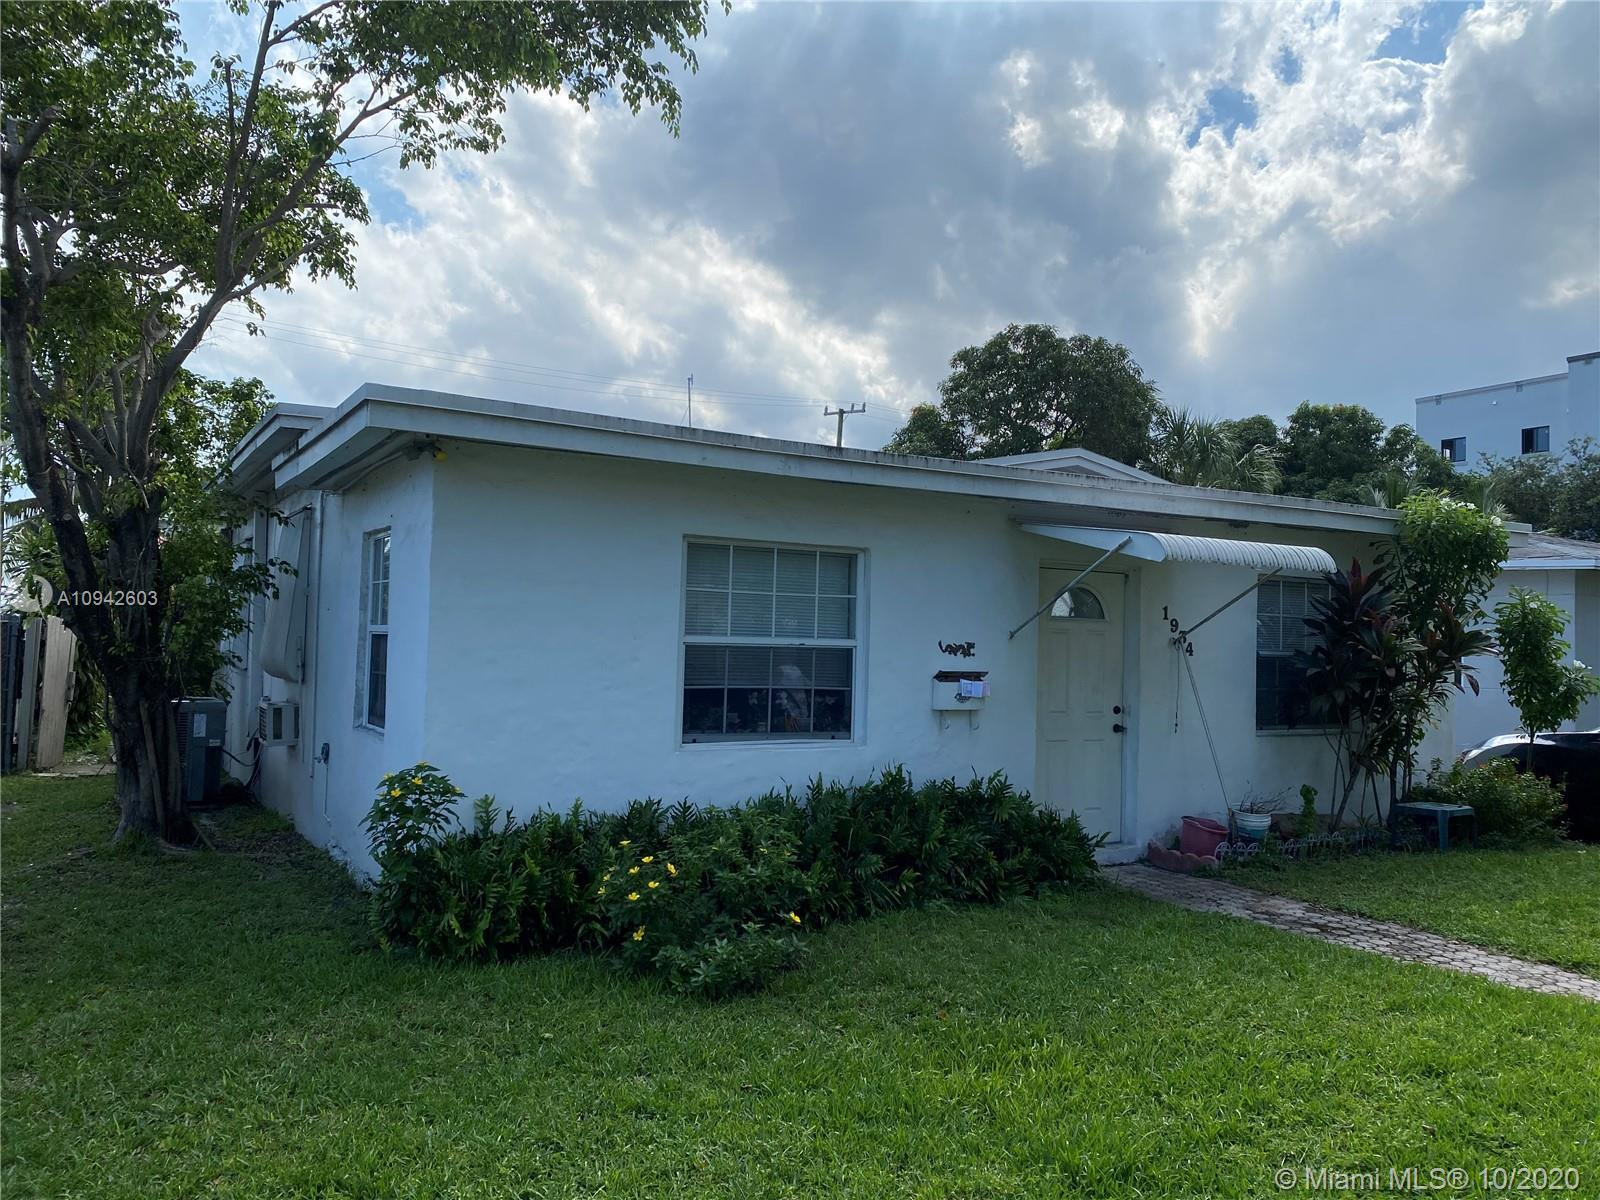 Perfectly Located! Just off of US1 this 2 bed/2 bath home has a rear structure that is currently bei